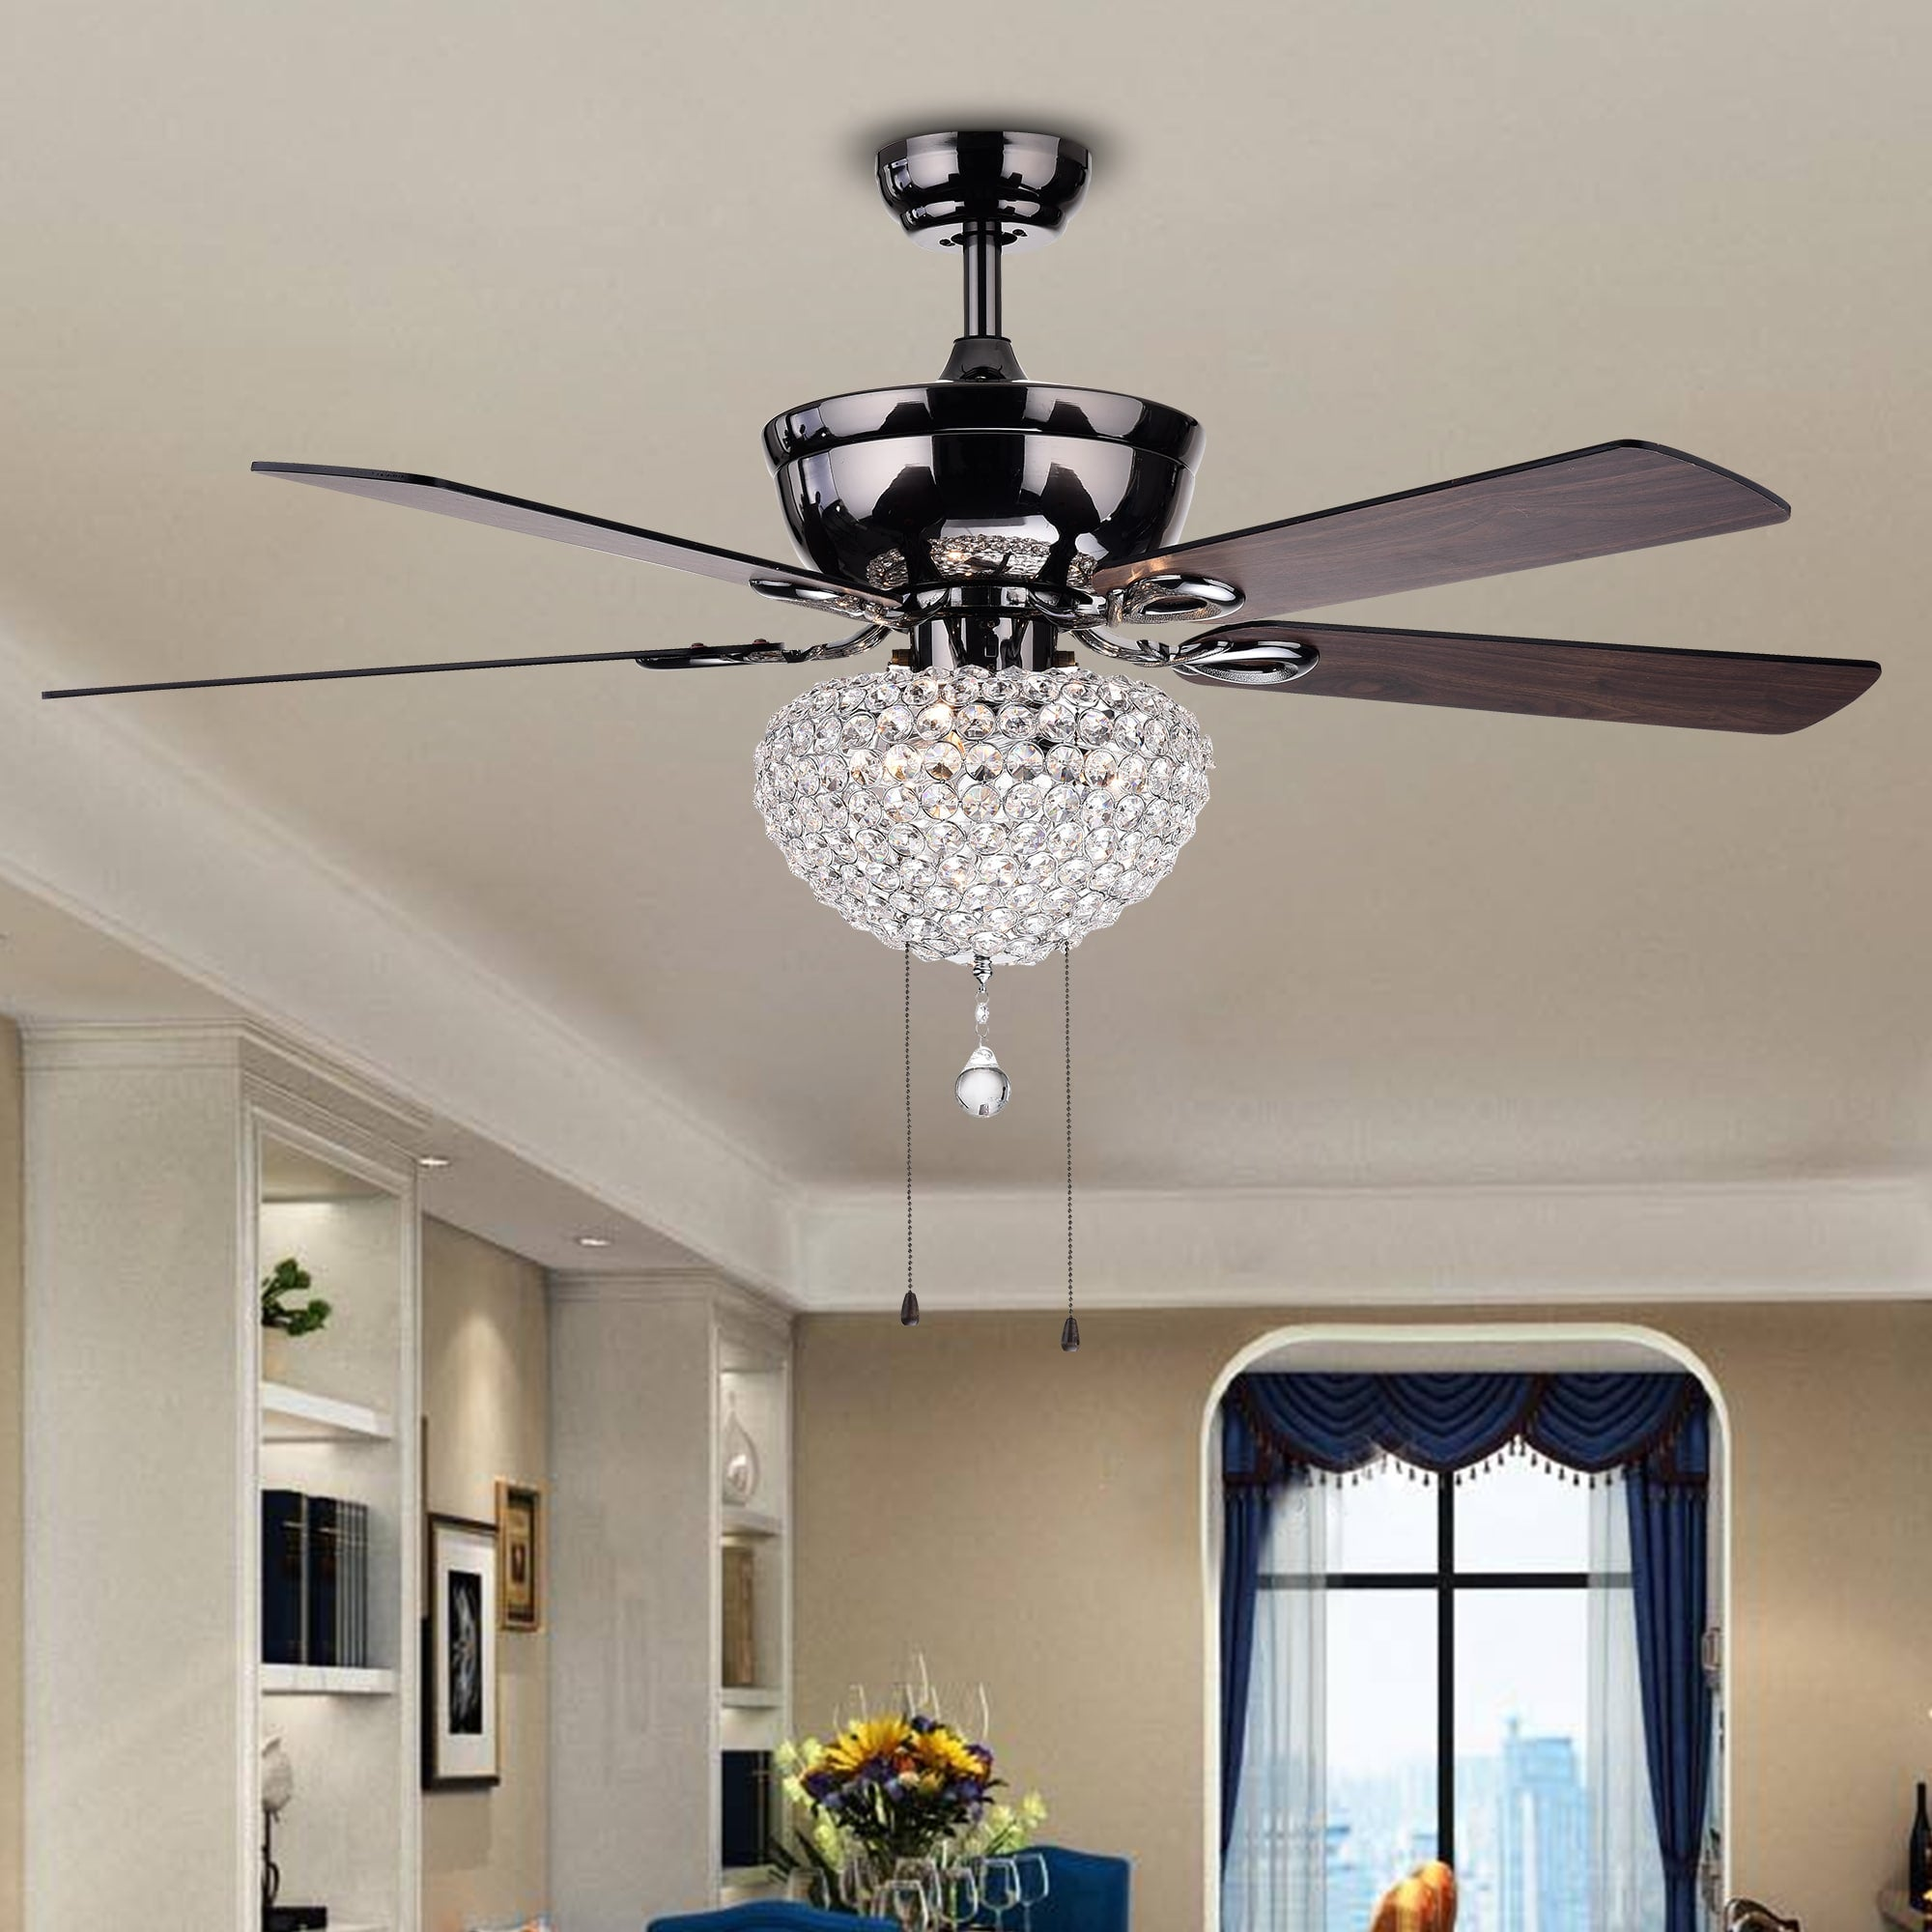 Three-Light Crystal Basket Five-Blade Wood with Black Metal Housing 52-Inch Ceiling Fan